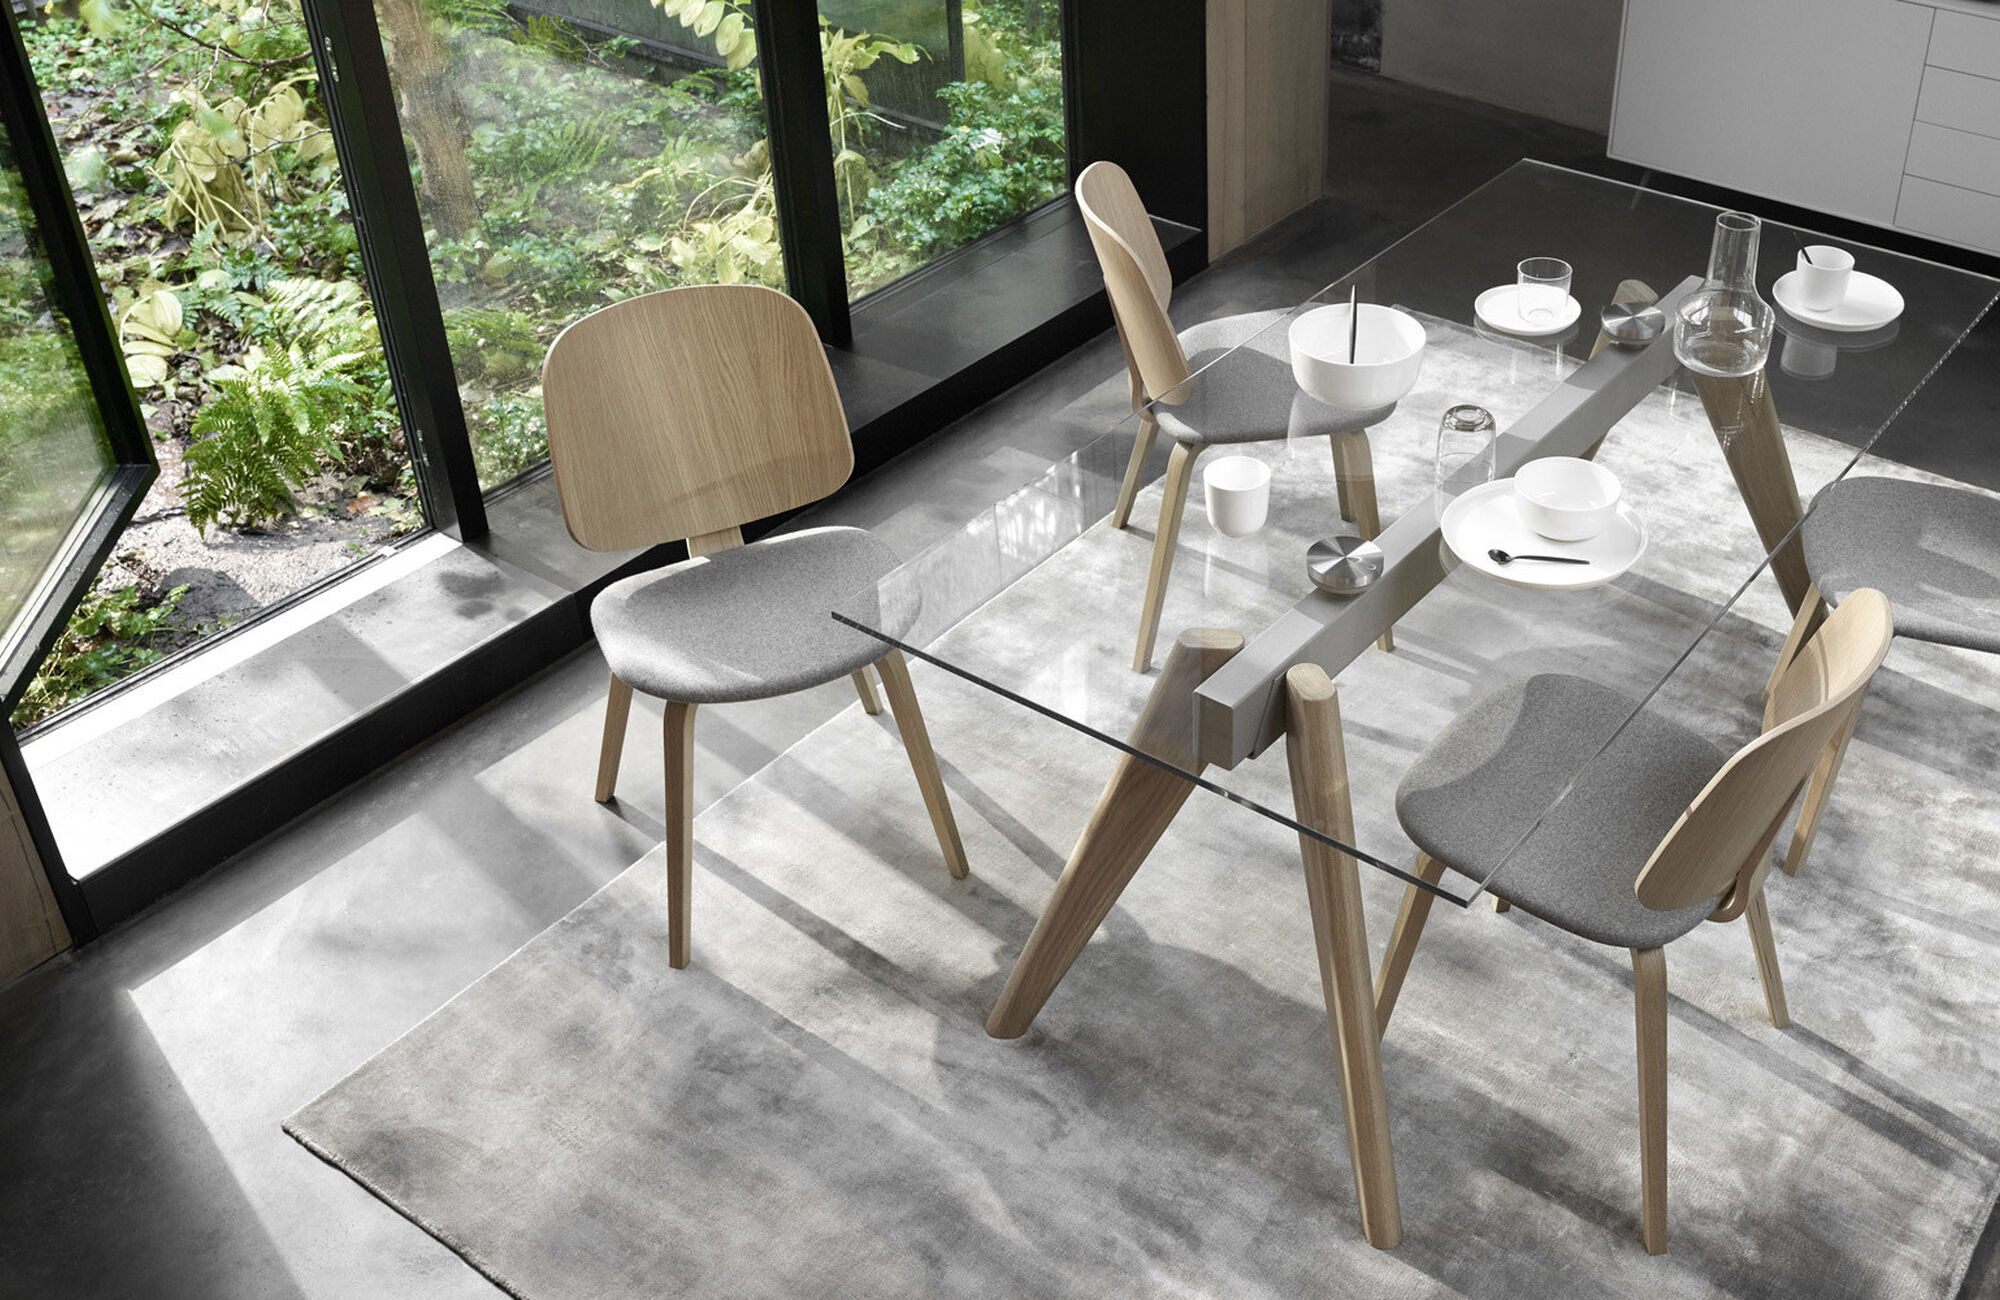 Monochrome - Monza table with supplementary tabletops